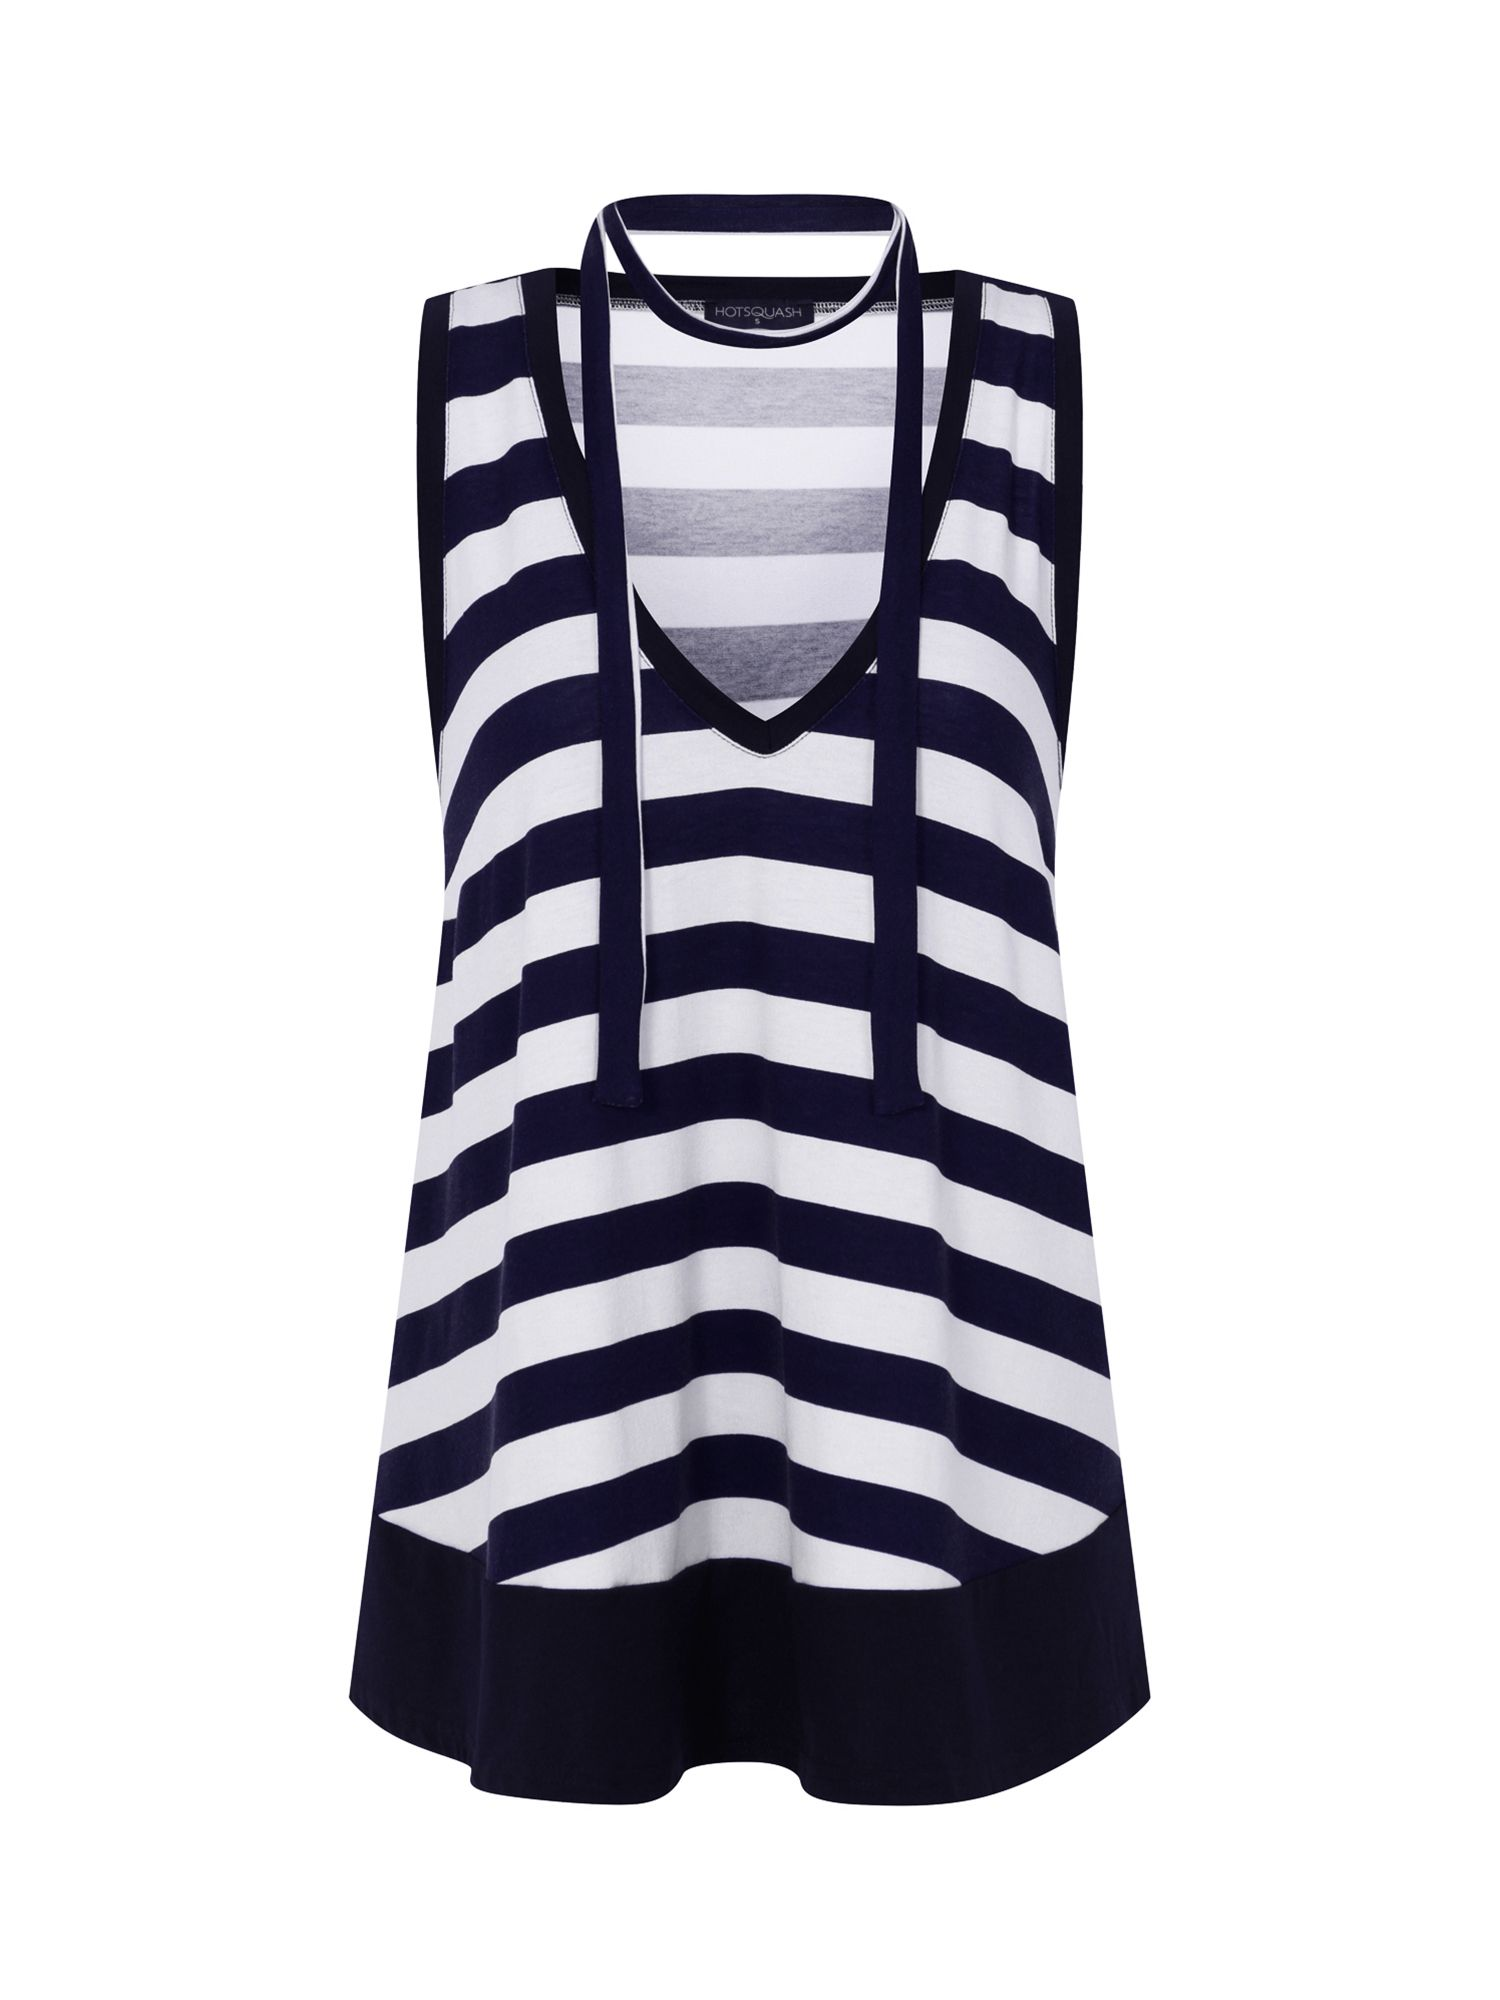 HotSquash Stripe Top with Neck Tie in CoolFresh, Multi-Bright